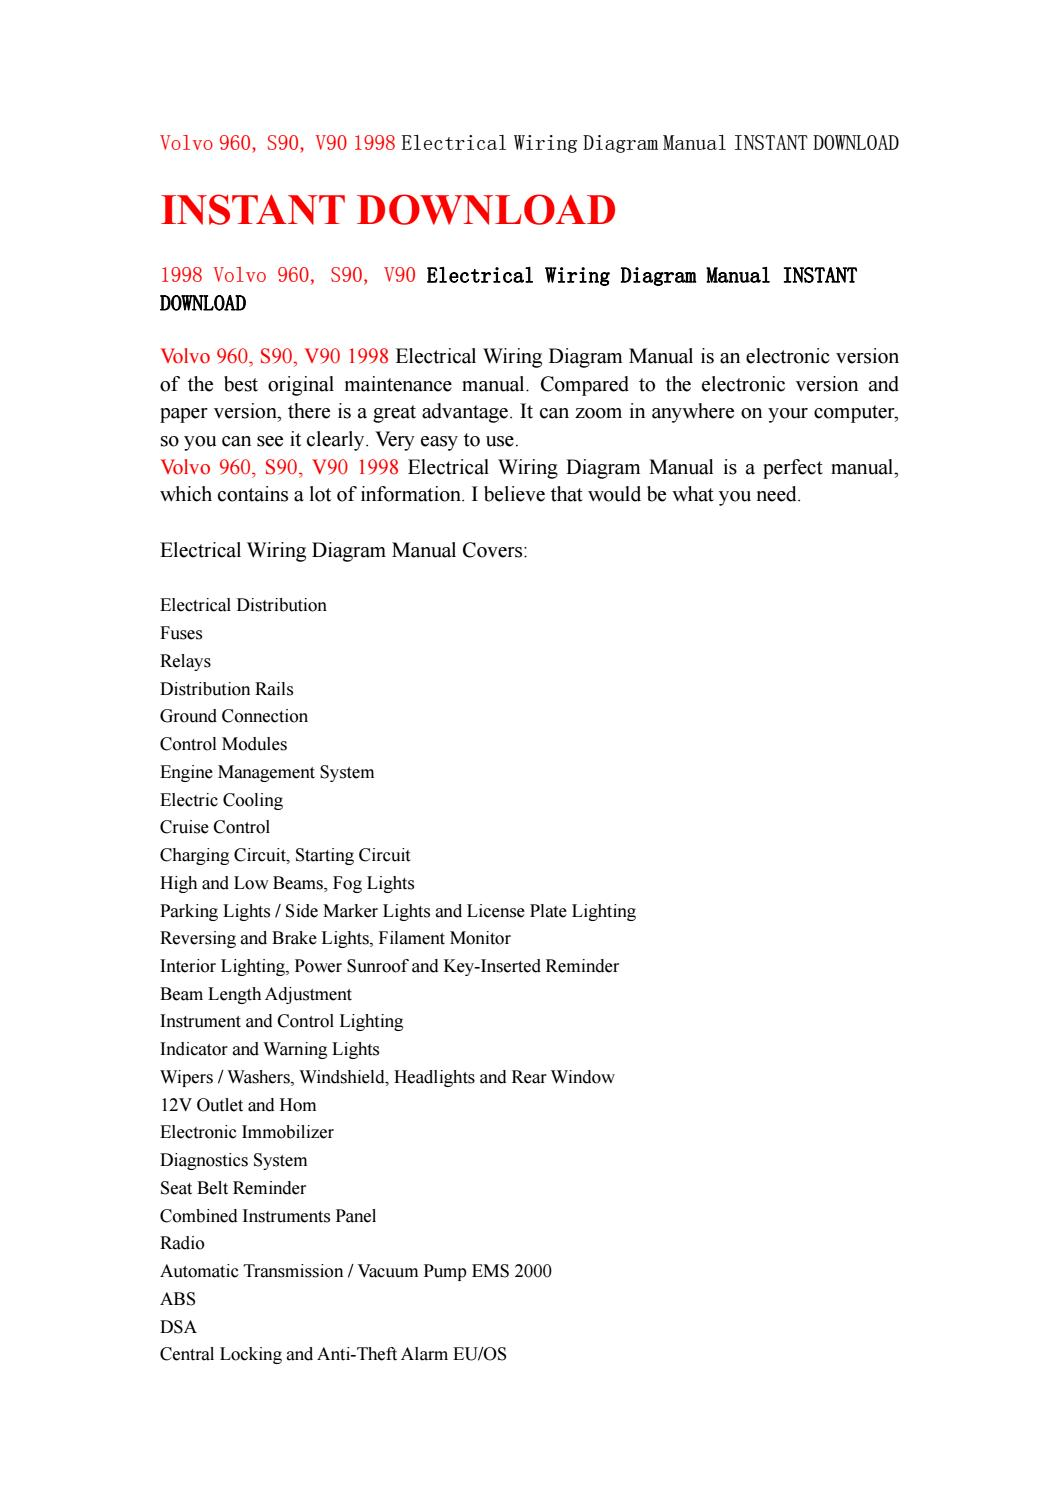 Volvo 960 S90 V90 1998 Electrical Wiring Diagram Manual Instant Warn 12v Download By Hfnsnf Issuu